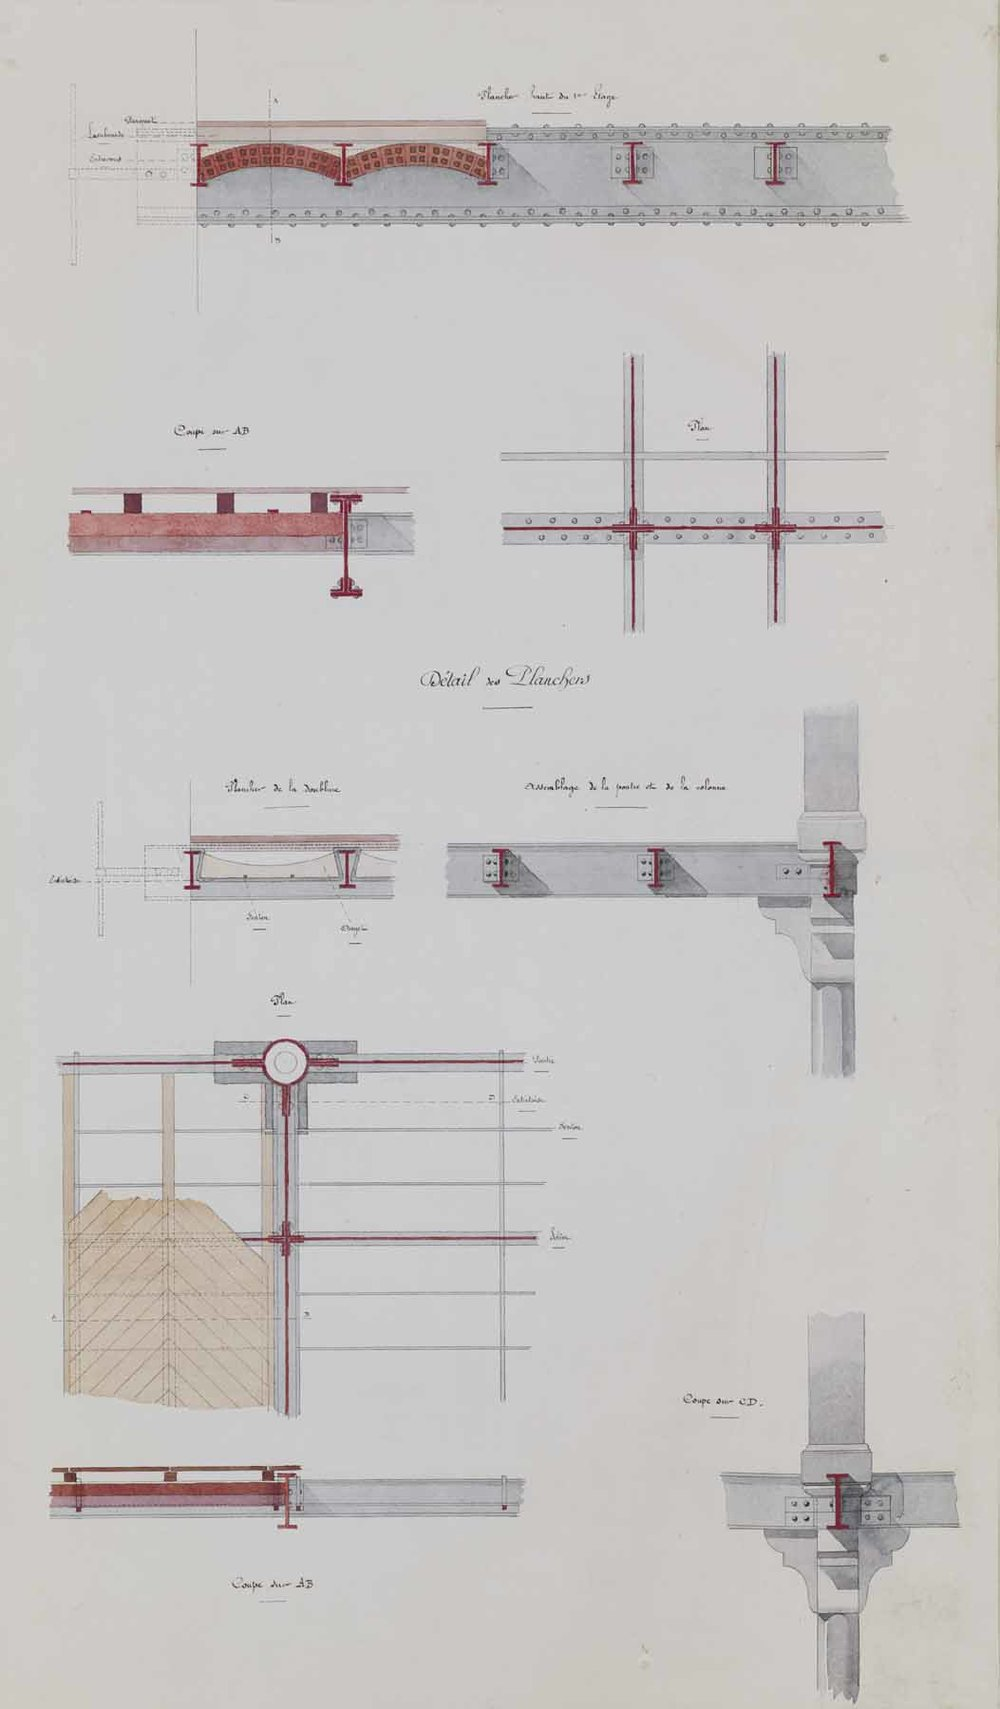 "Jules-Germain Olivier,  Ironwork: Details of the Floors,  c. 1890-1900, ink and watercolor on paper, 41 1/4 x 26 1/4"" framed"